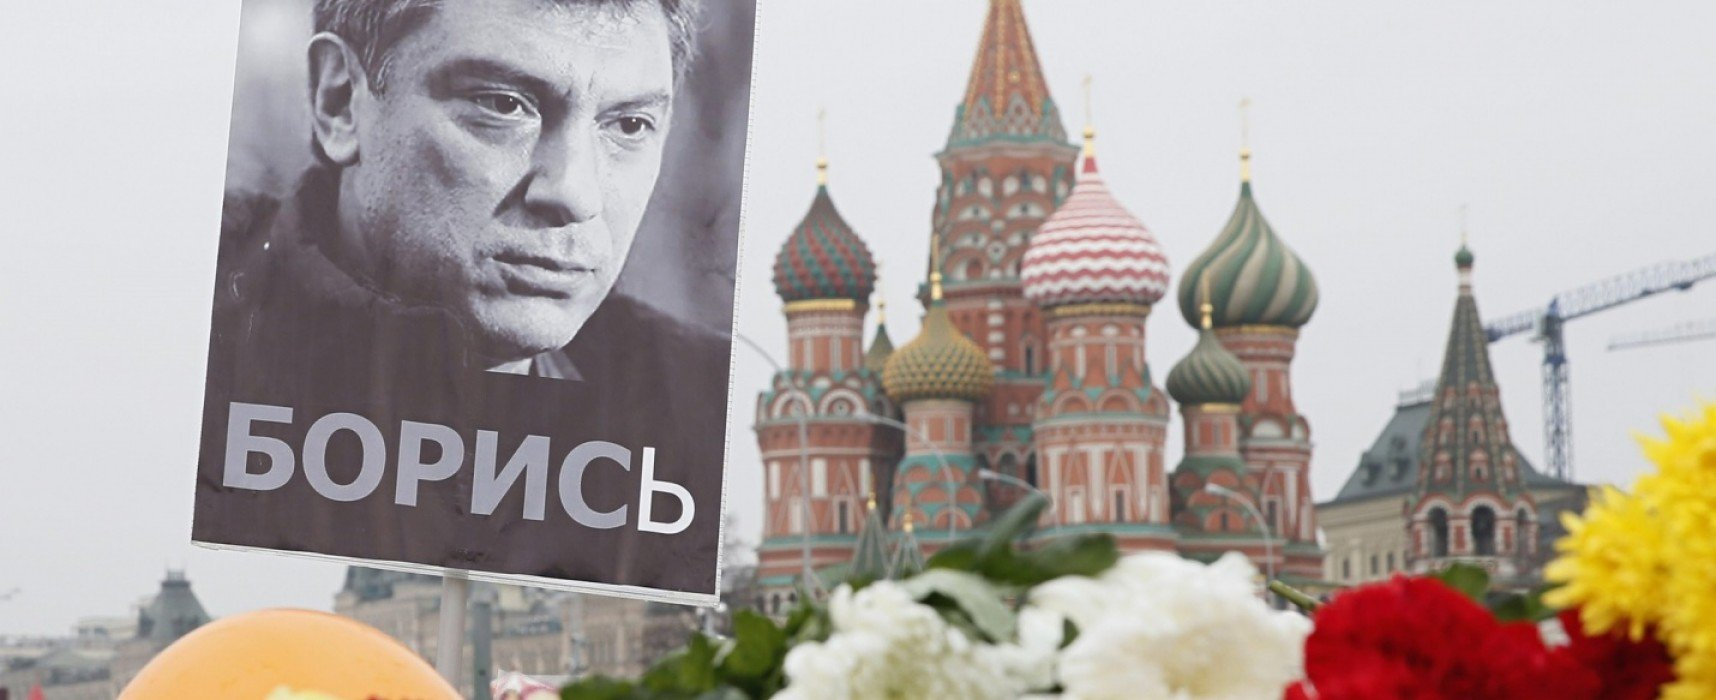 The Guardian view on Russian propaganda: the truth is out there